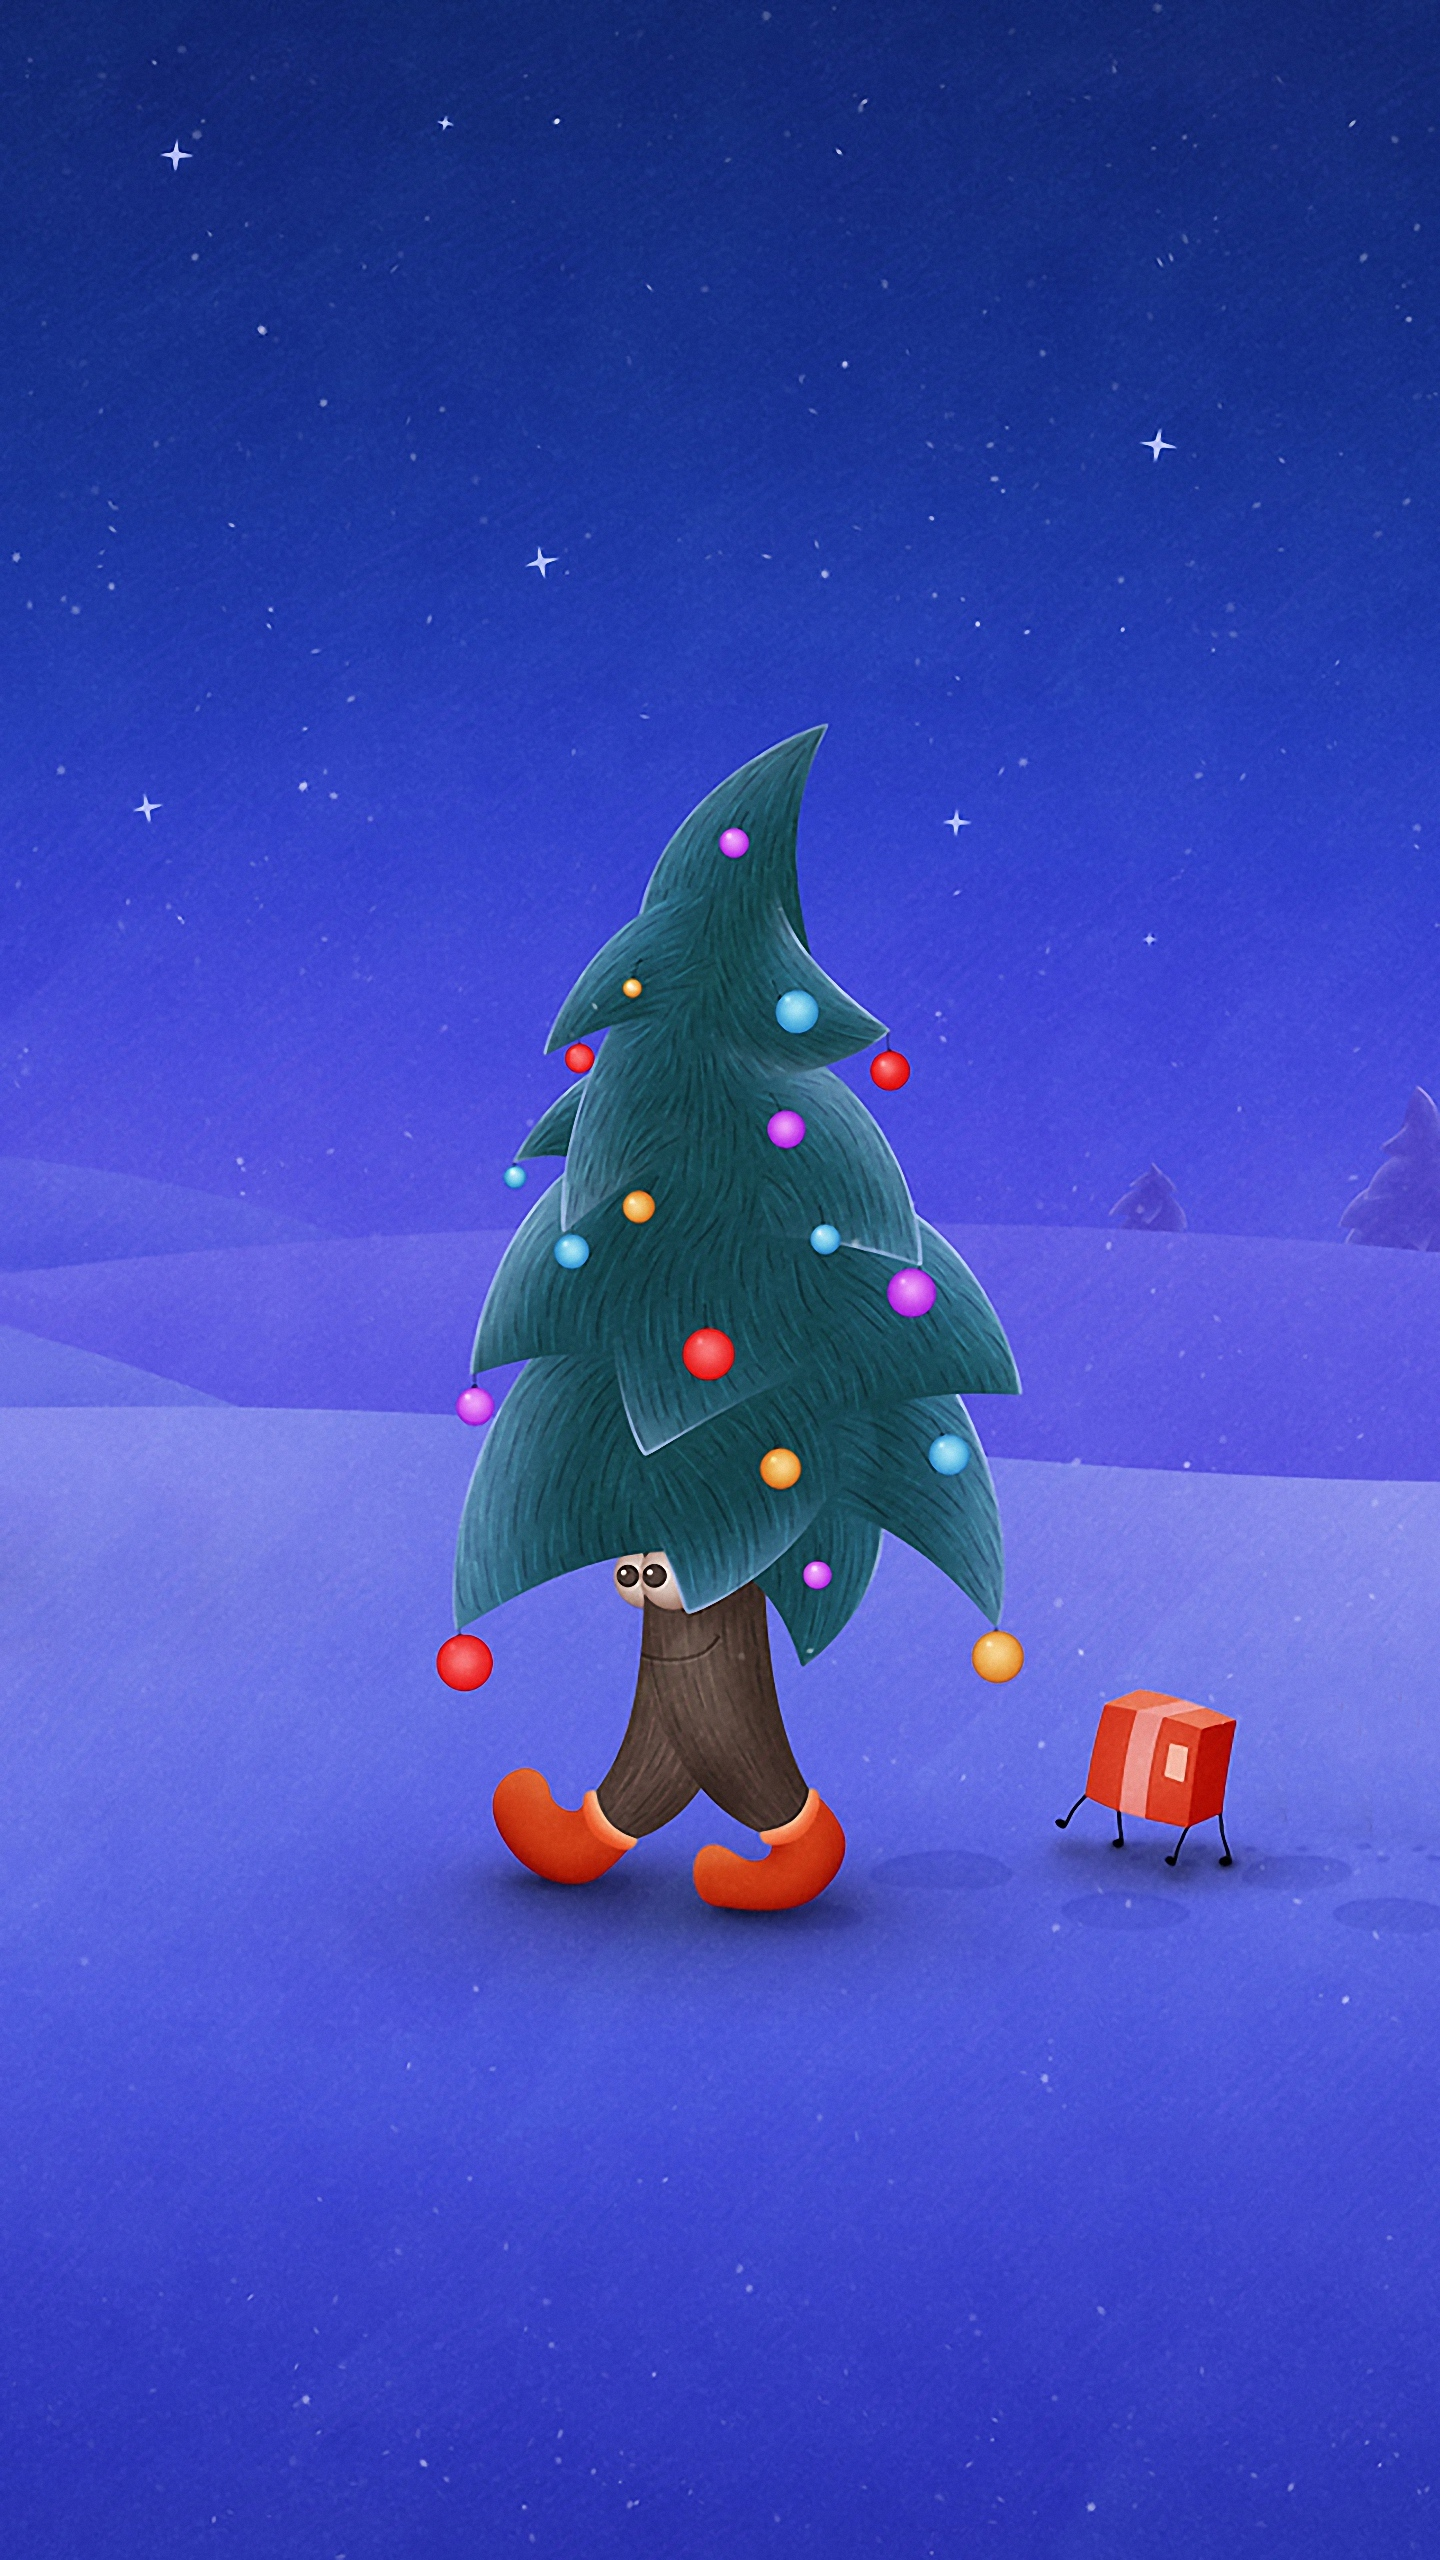 Hd wallpaper mobile phone - 1440x2560 Mobile Phone Wallpapers Quad Hd Funny Christmas Tree